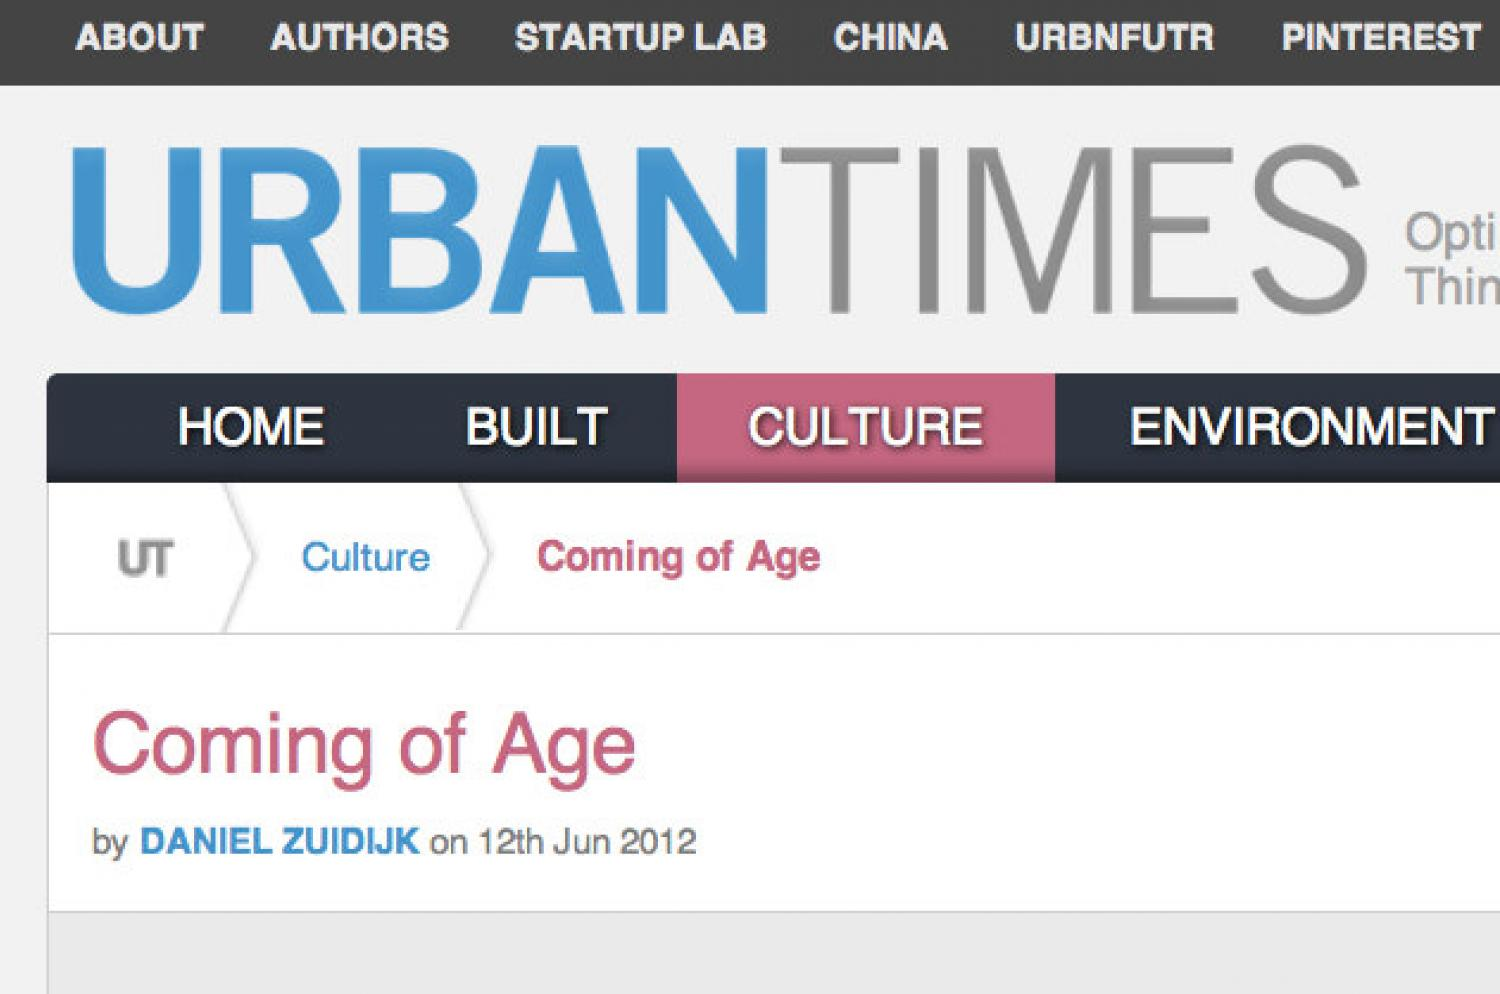 Coming of Age Urban Times logo